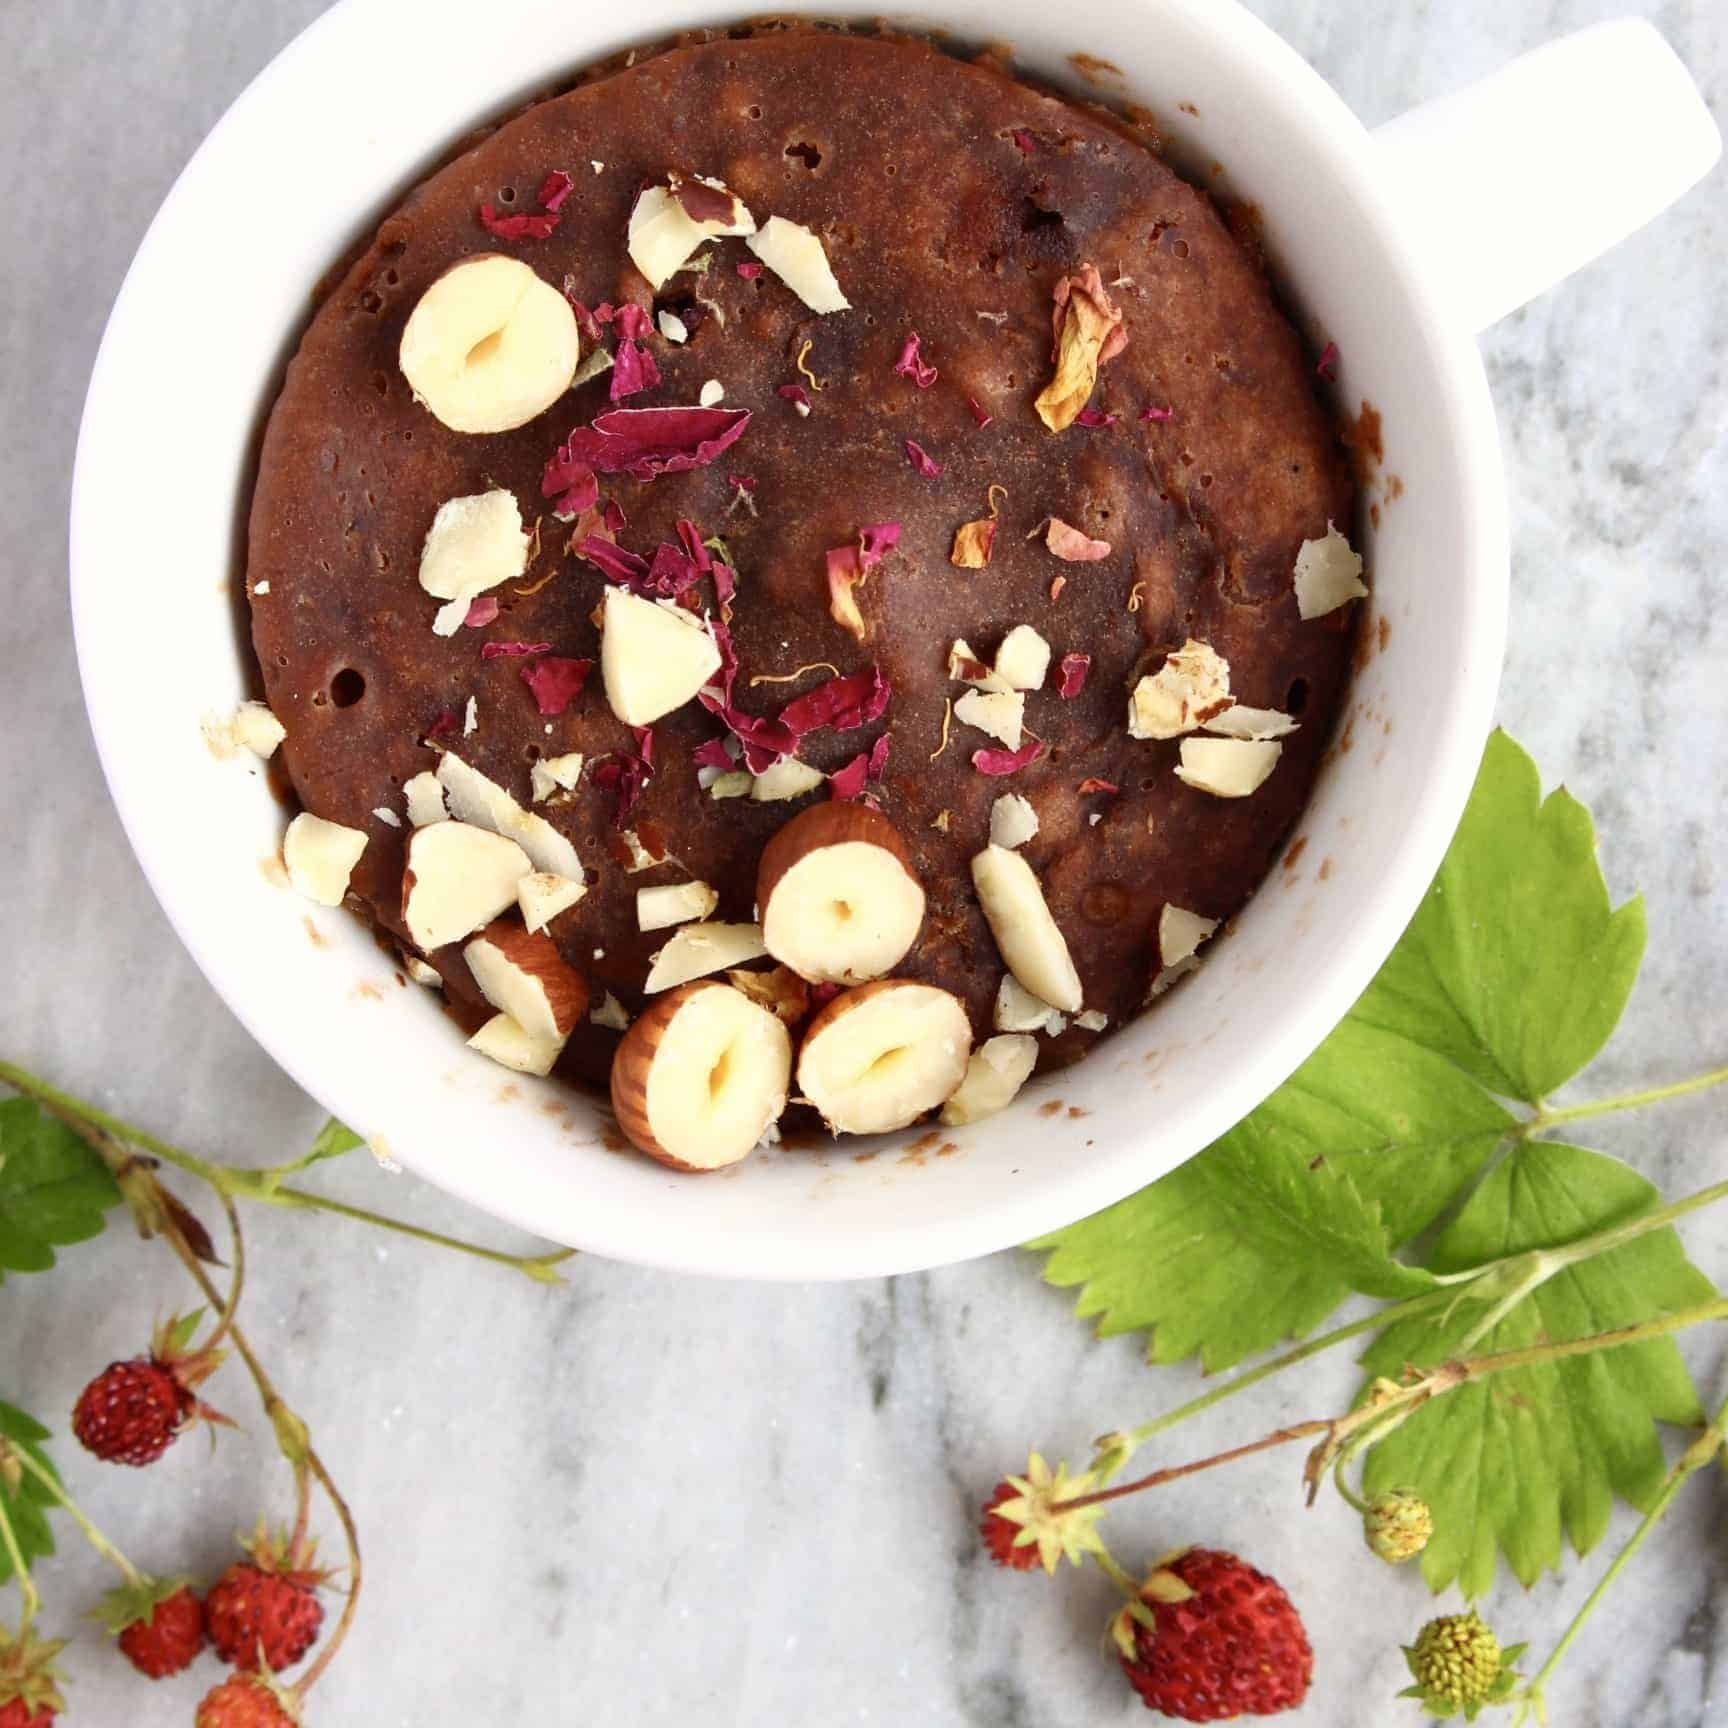 This healthy Vegan Chocolate Microwave Mug Cake requires just 5 ingredients and takes only 5 minutes to make! Refined sugar free and gluten-free optional.